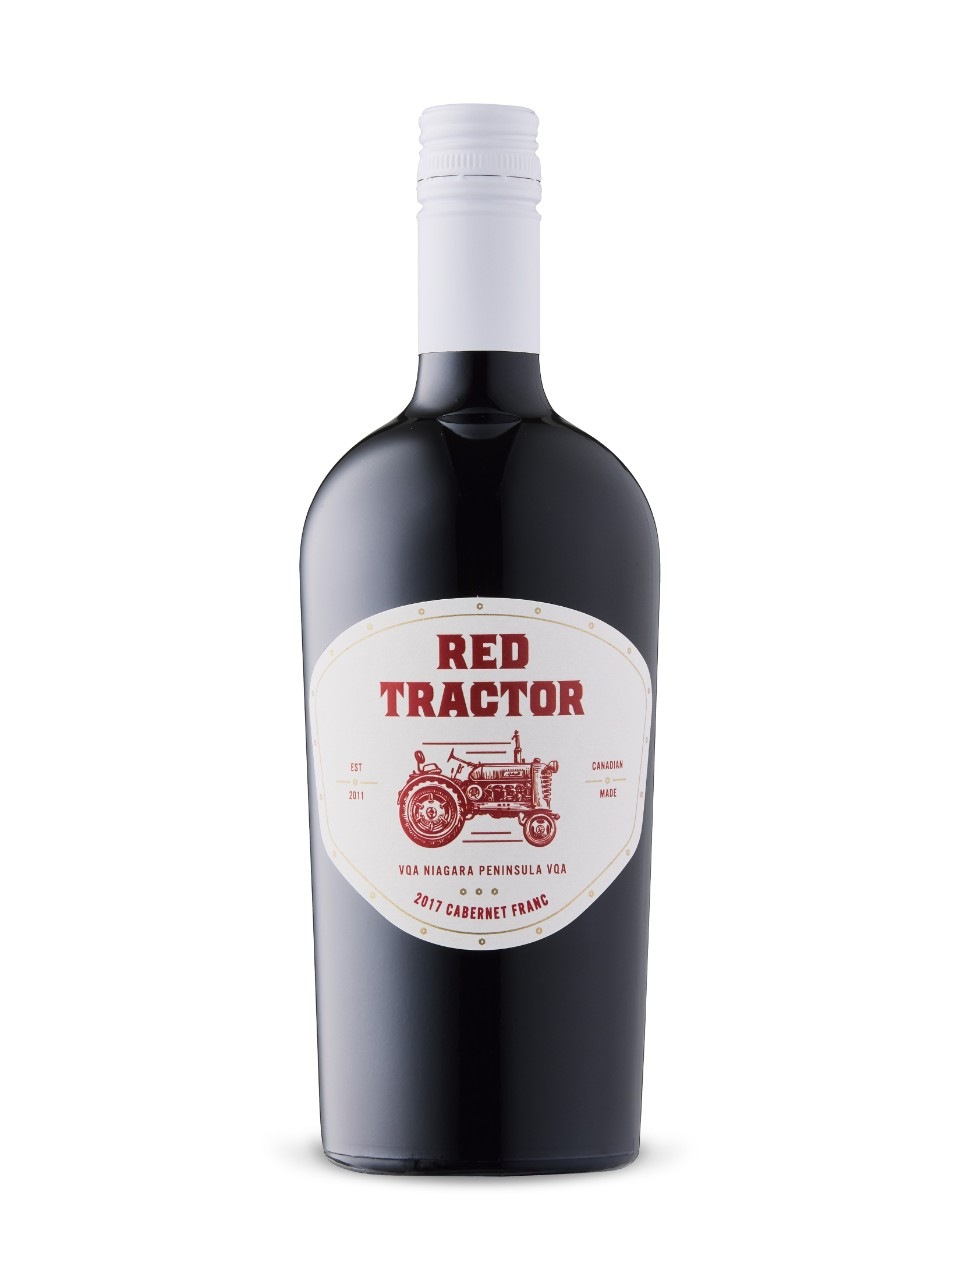 Creekside Red Tractor Cabernet Franc 2017 from LCBO